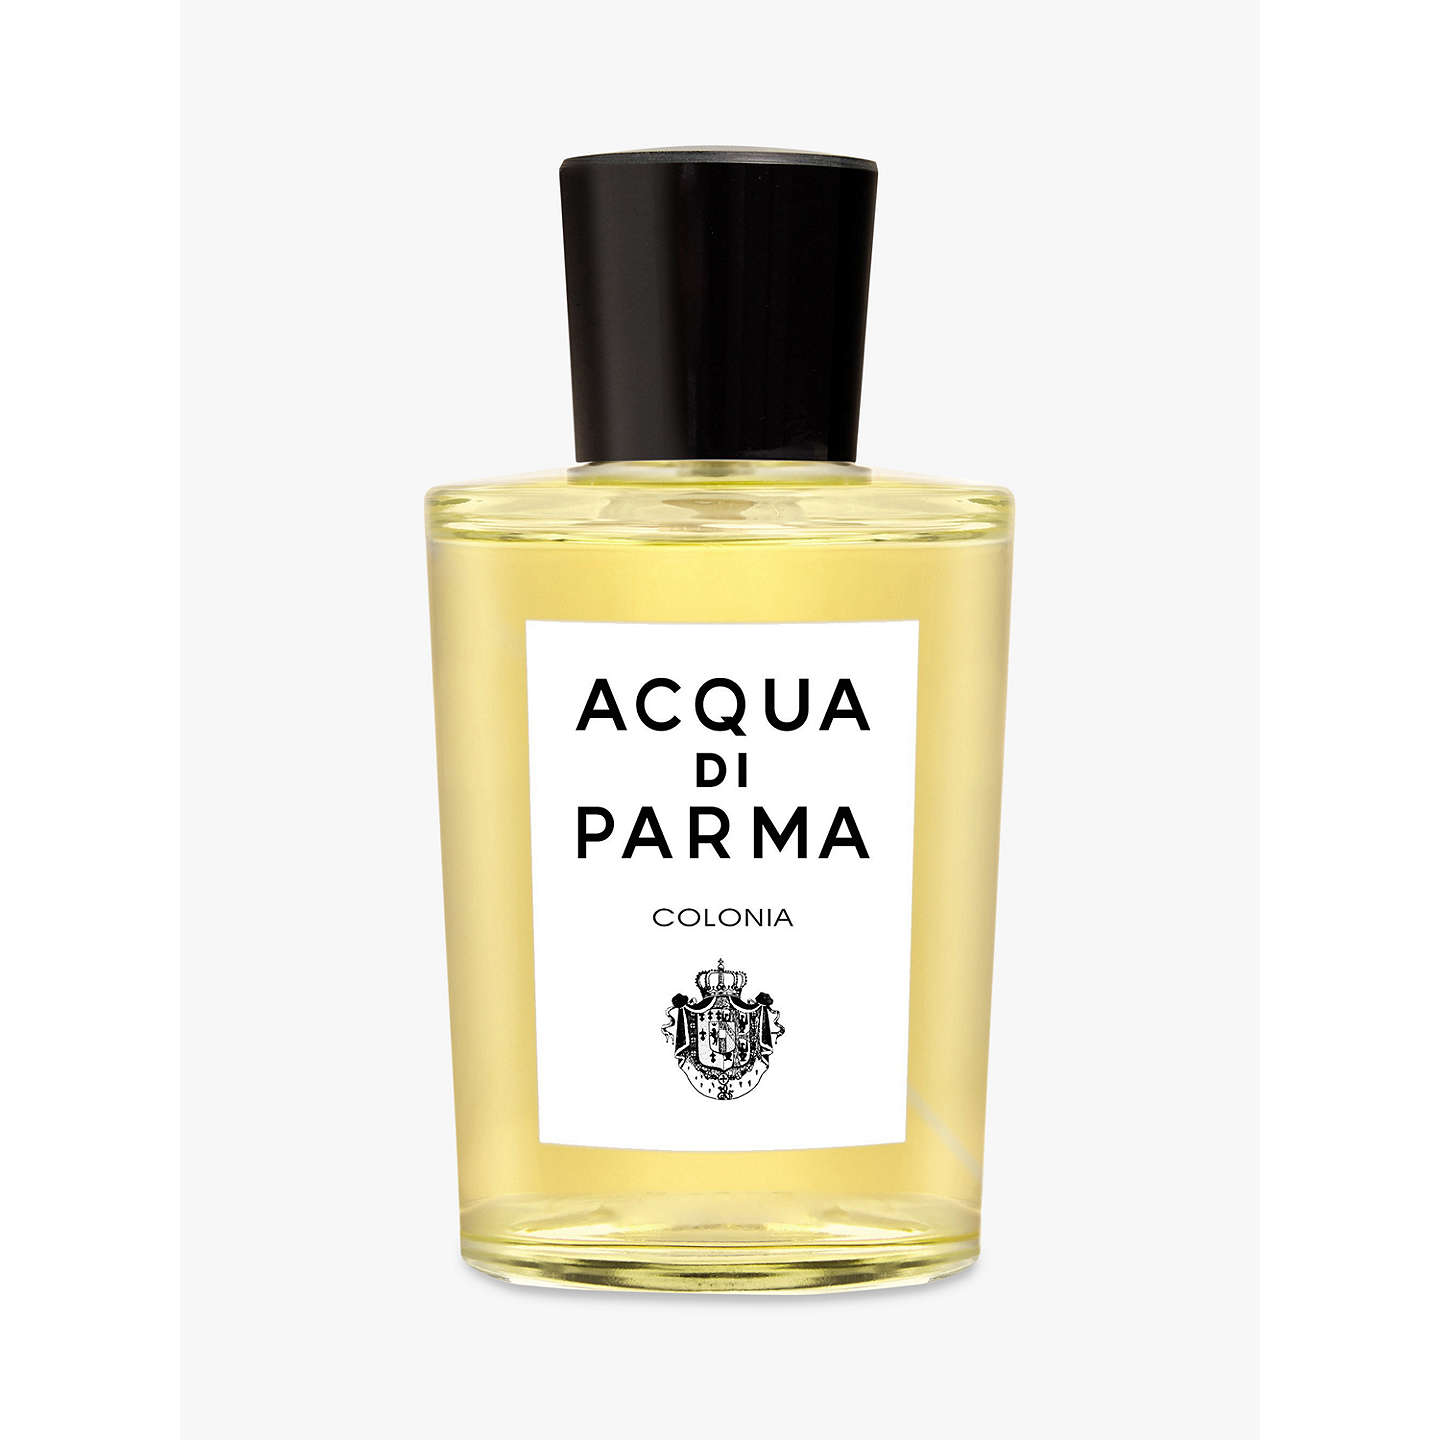 BuyAcqua di Parma Colonia Eau de Cologne Giant Splash Bottle, 500ml Online at johnlewis.com